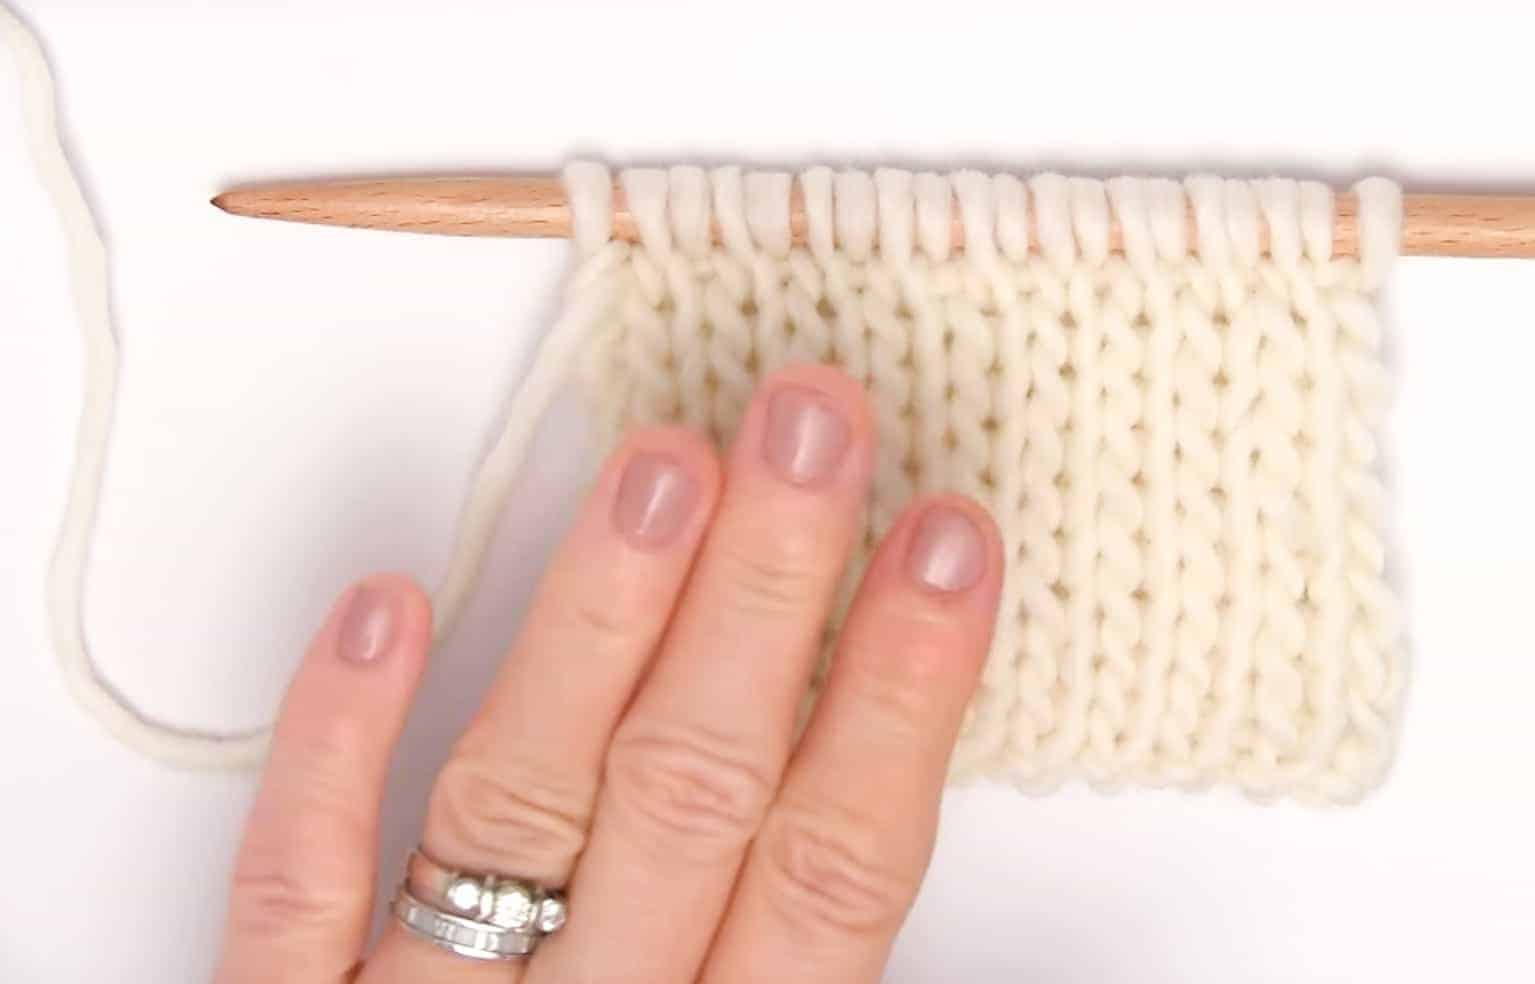 Knitting Stitch Like A Knot Crossword : Top 20 Video Tutorials of Some of the Most Popular Knitting Stitches - Ideal Me